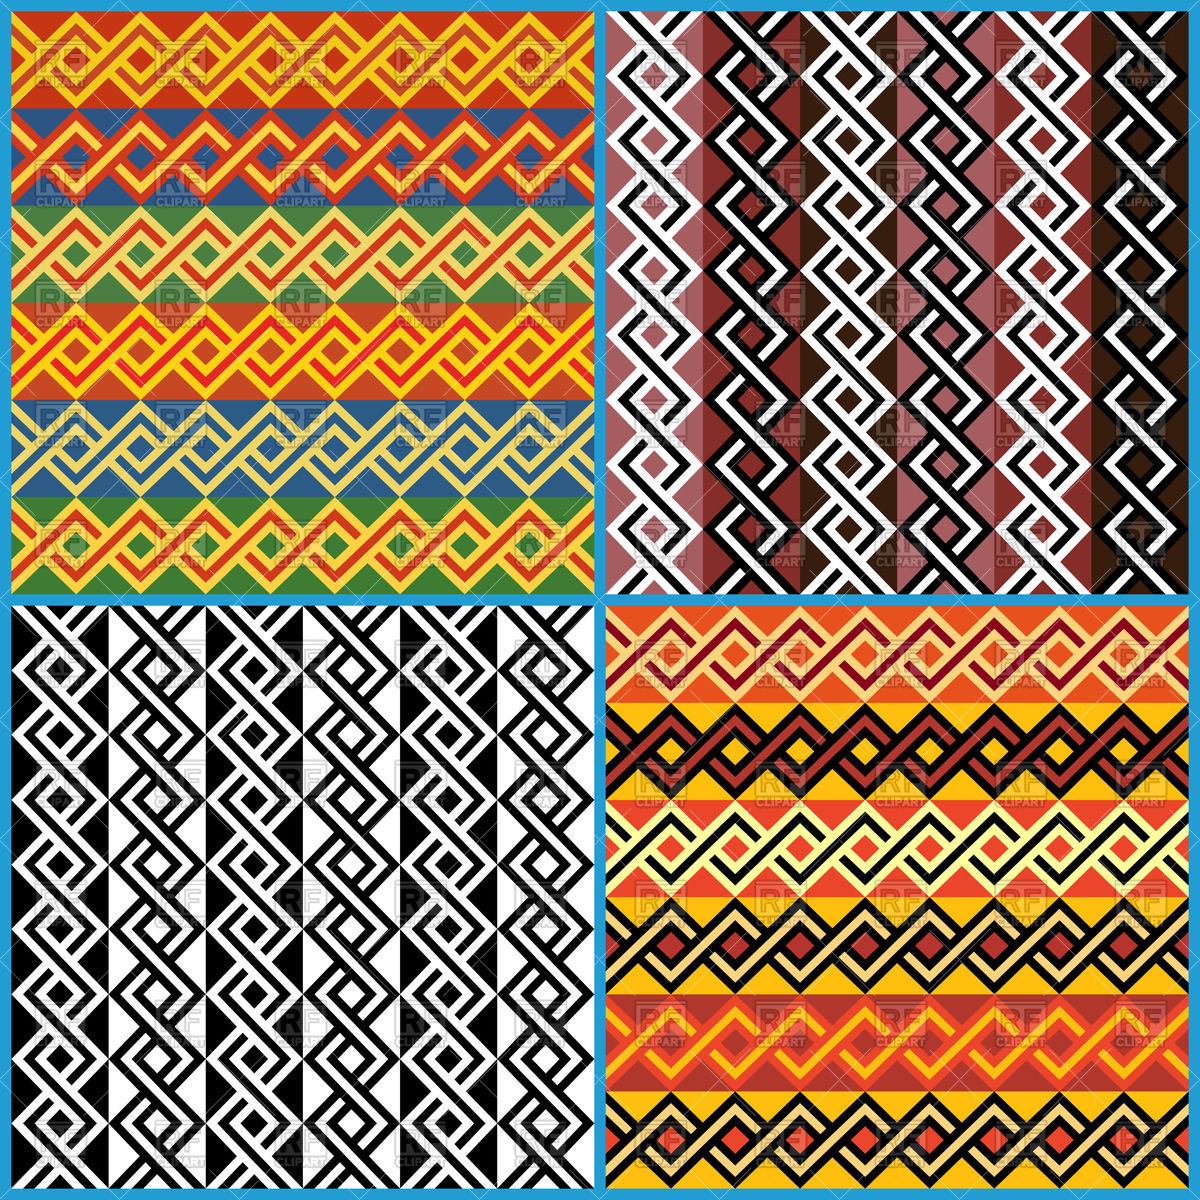 1200x1200 Seamless African Ethnic Patterns Vector Image Vector Artwork Of